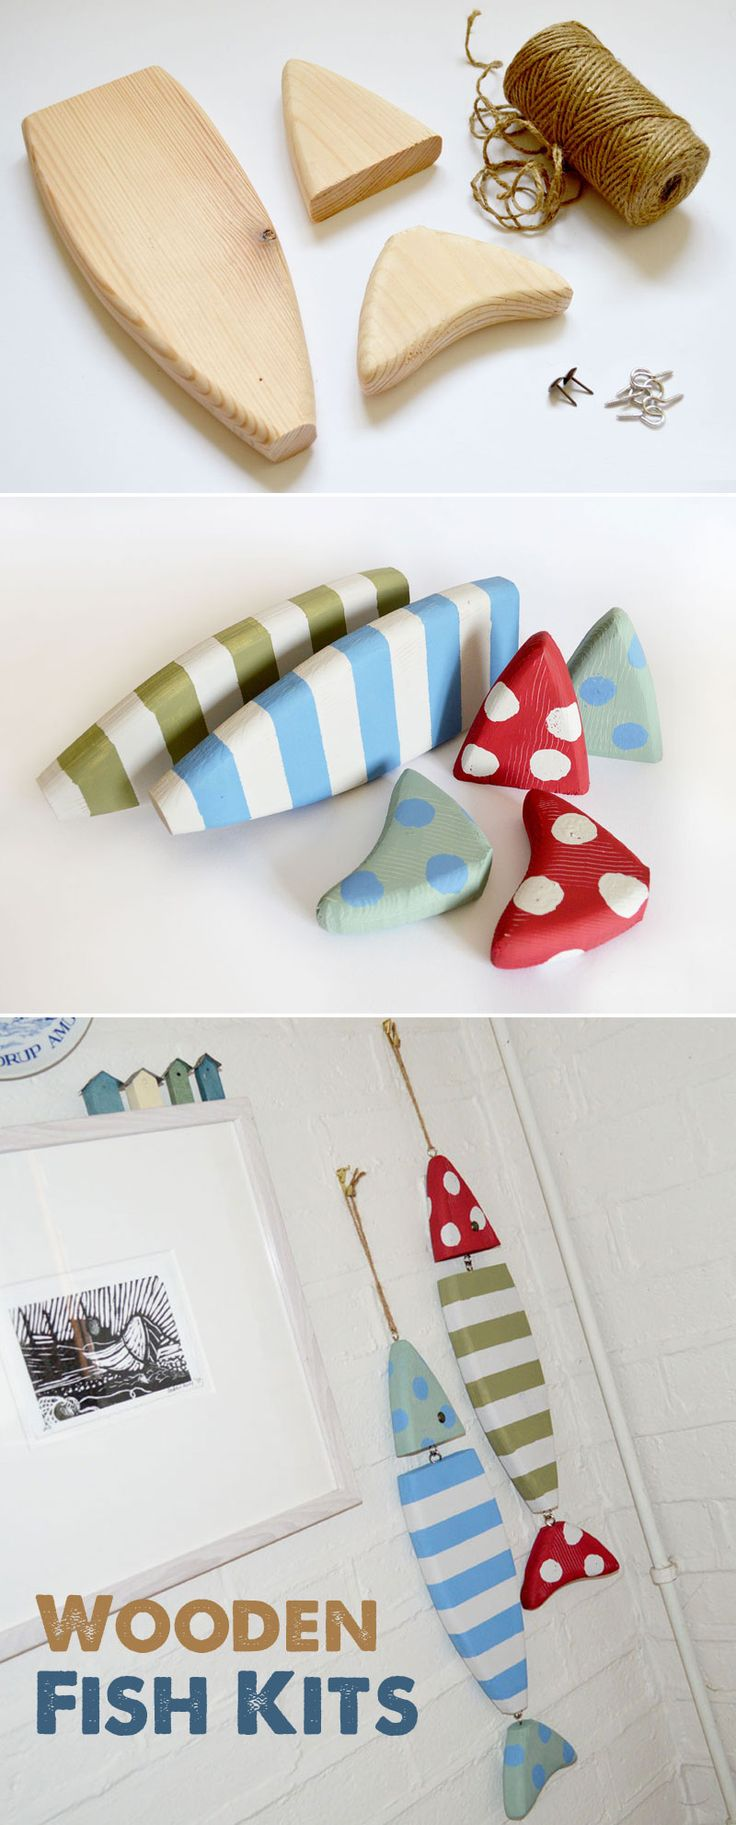 Handmade Wooden Fish Kits - custom paint or decopatch to suit your own decor. Create an almost beach house feel to your kitchen, livingroom or bathroom. http://mollymoo.ie/wooden-fish-kits/